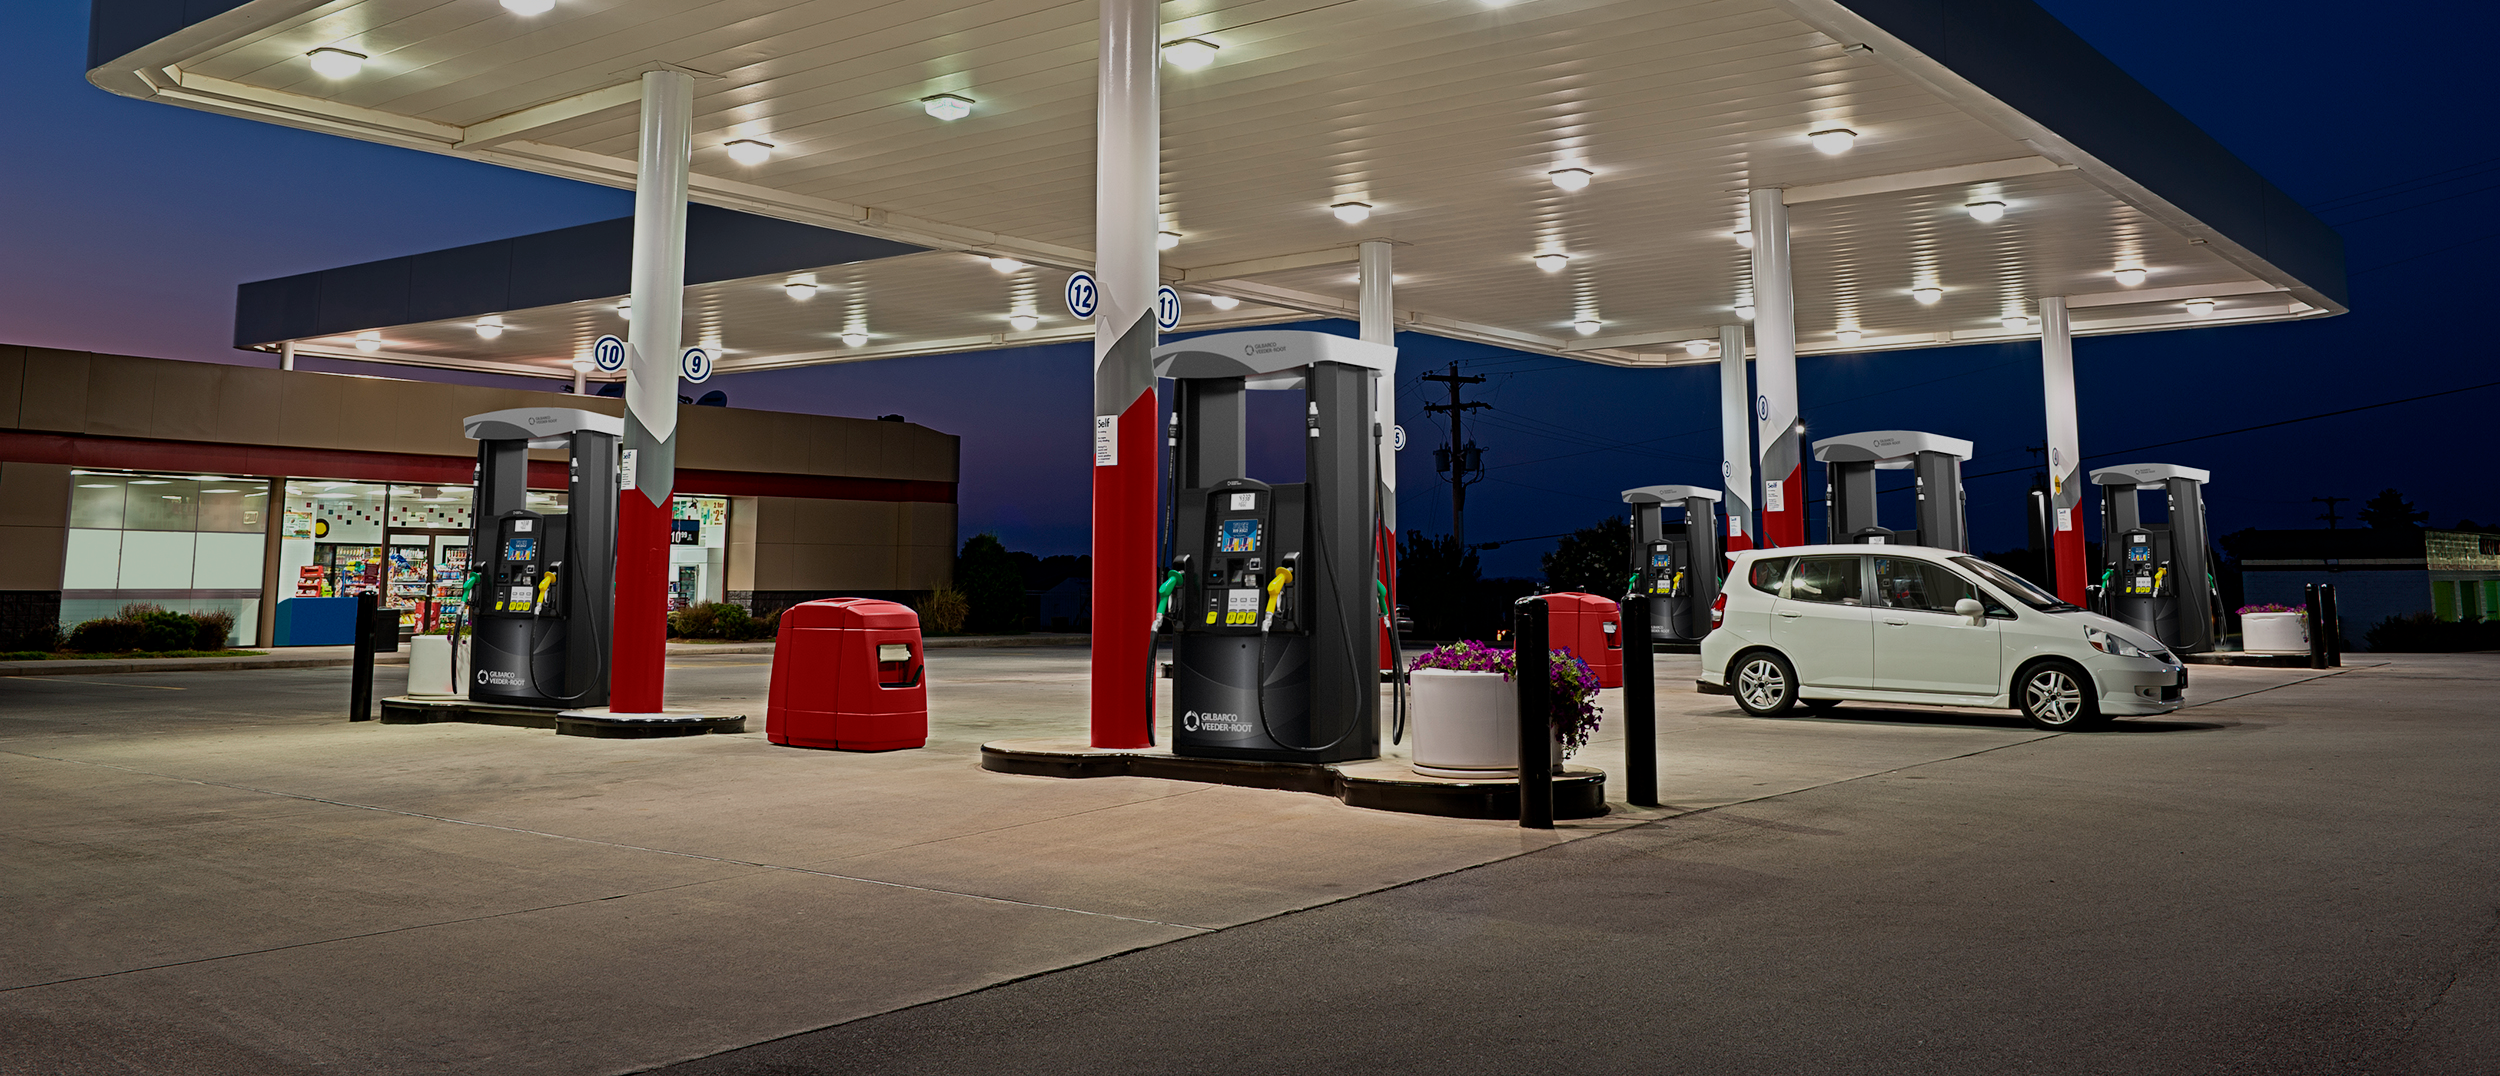 Unbranded-gas-station-with-Encore-700-dispensers